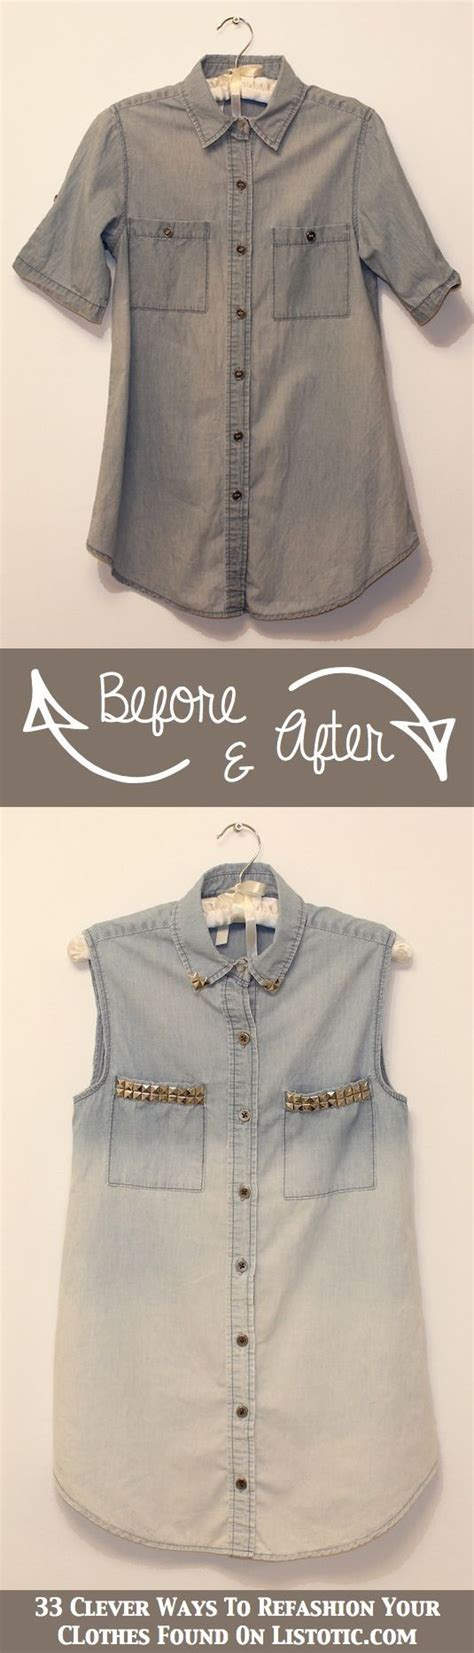 diy refashion clothes 33 clever ways to refashion clothes with tutorials